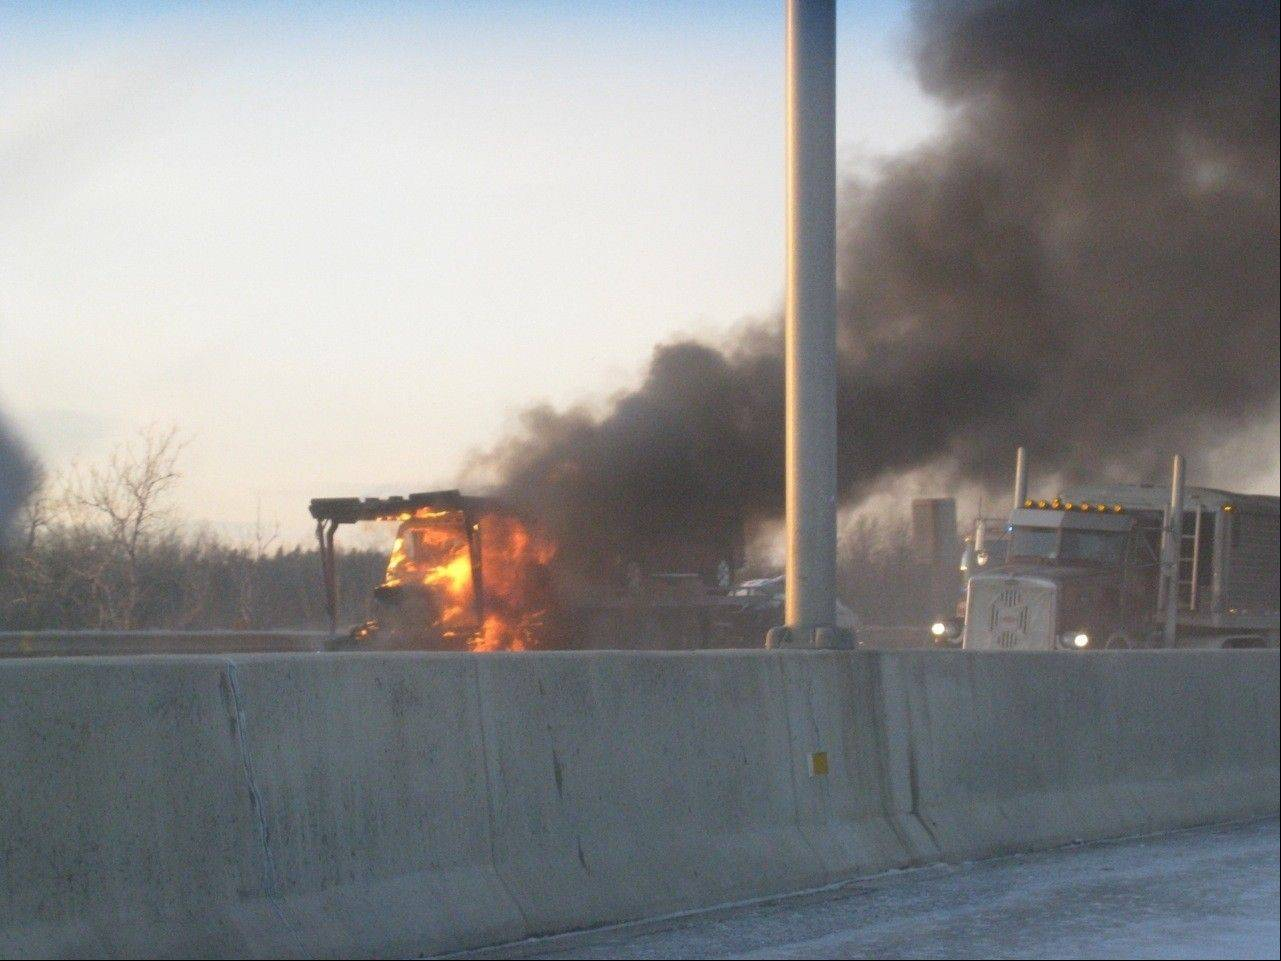 A semitrailer truck caught fire on Interstate 94 near Libertyville Friday afternoon.